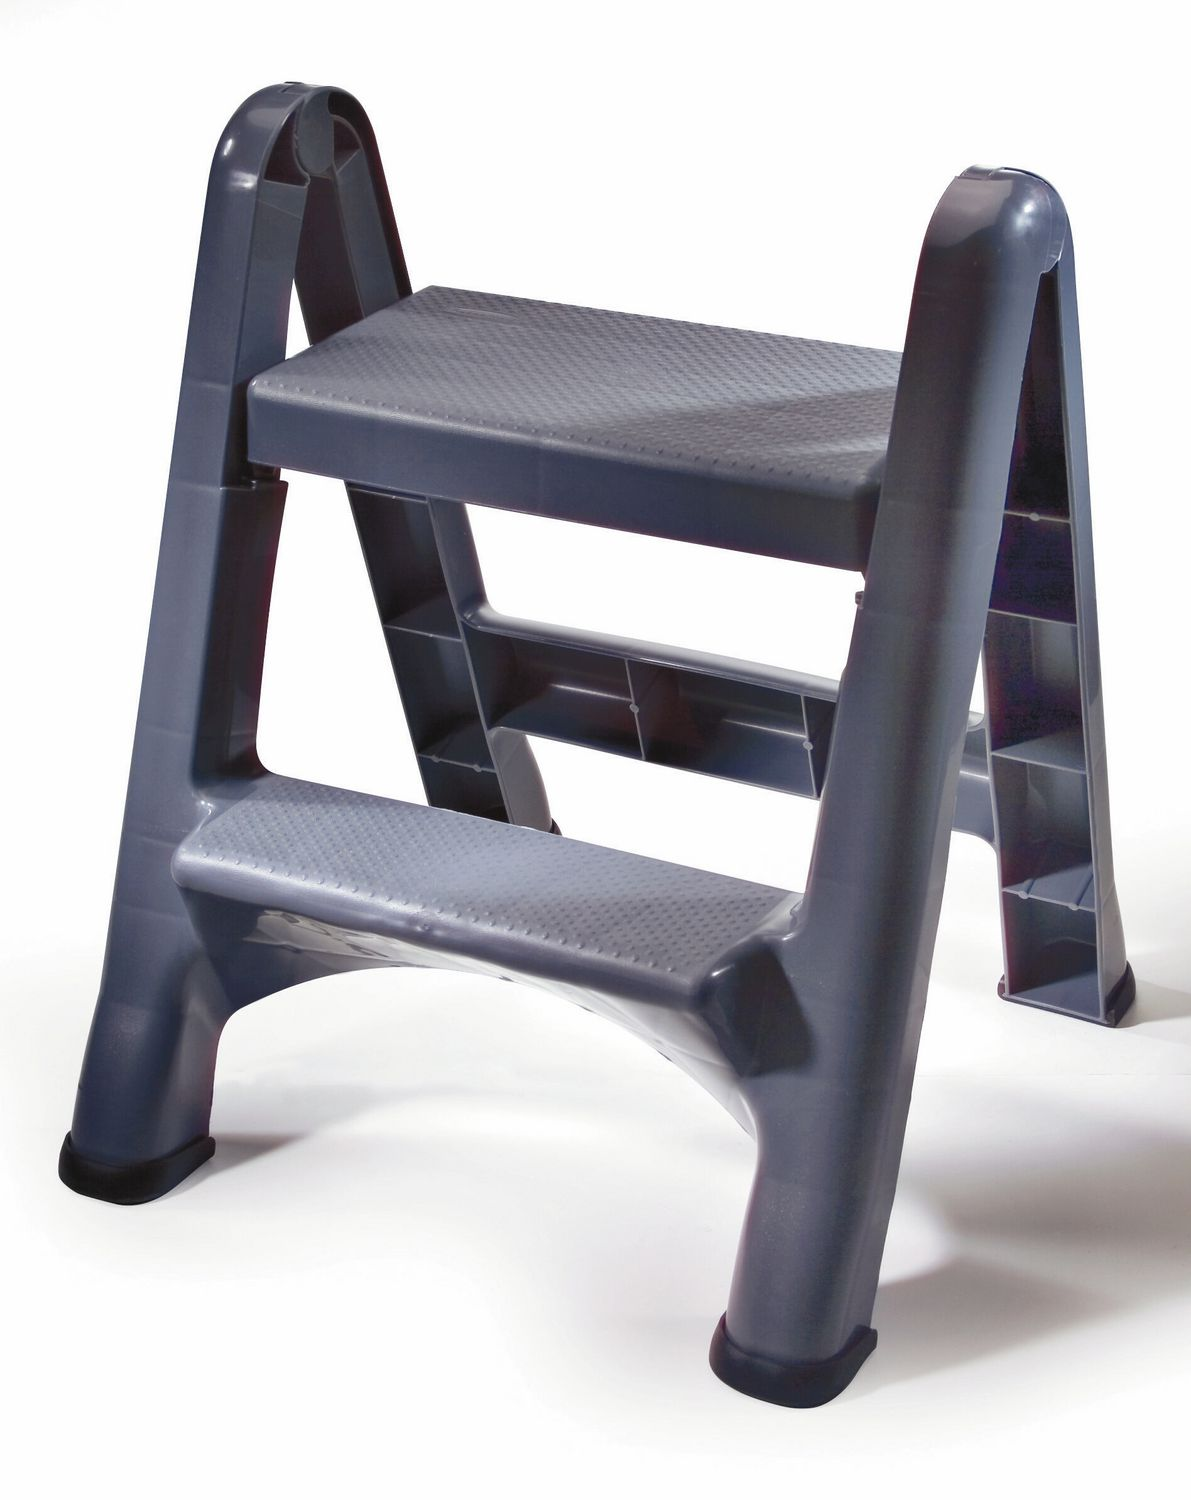 johnlewis at rsp john buyhouse lewis wooden main com fixed step online by house stool pdp